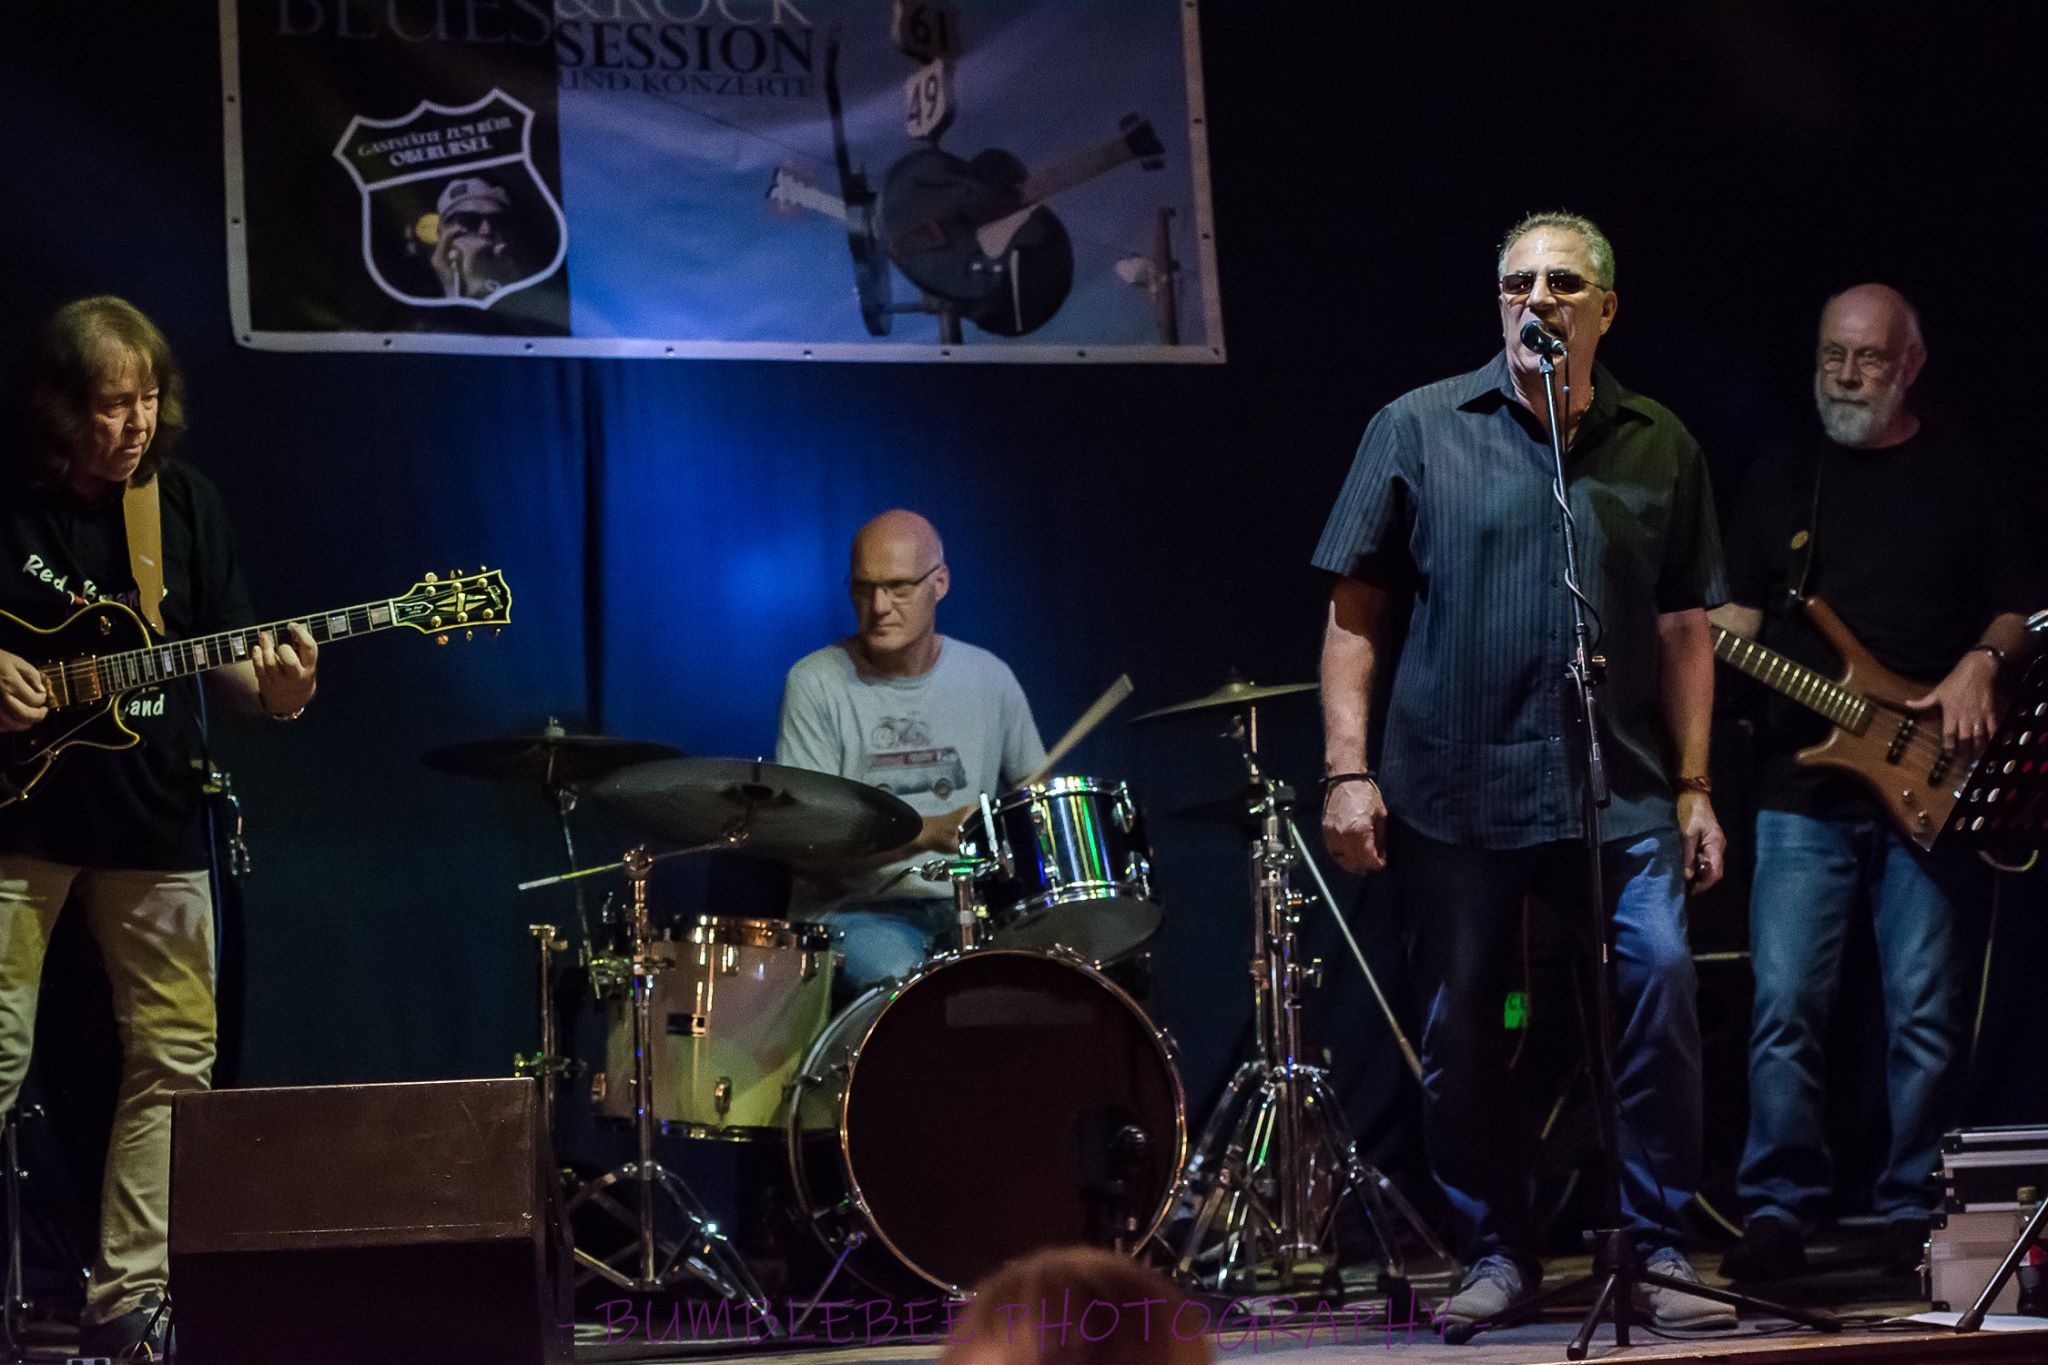 Blues Session Zum Rühl 20.9.2018